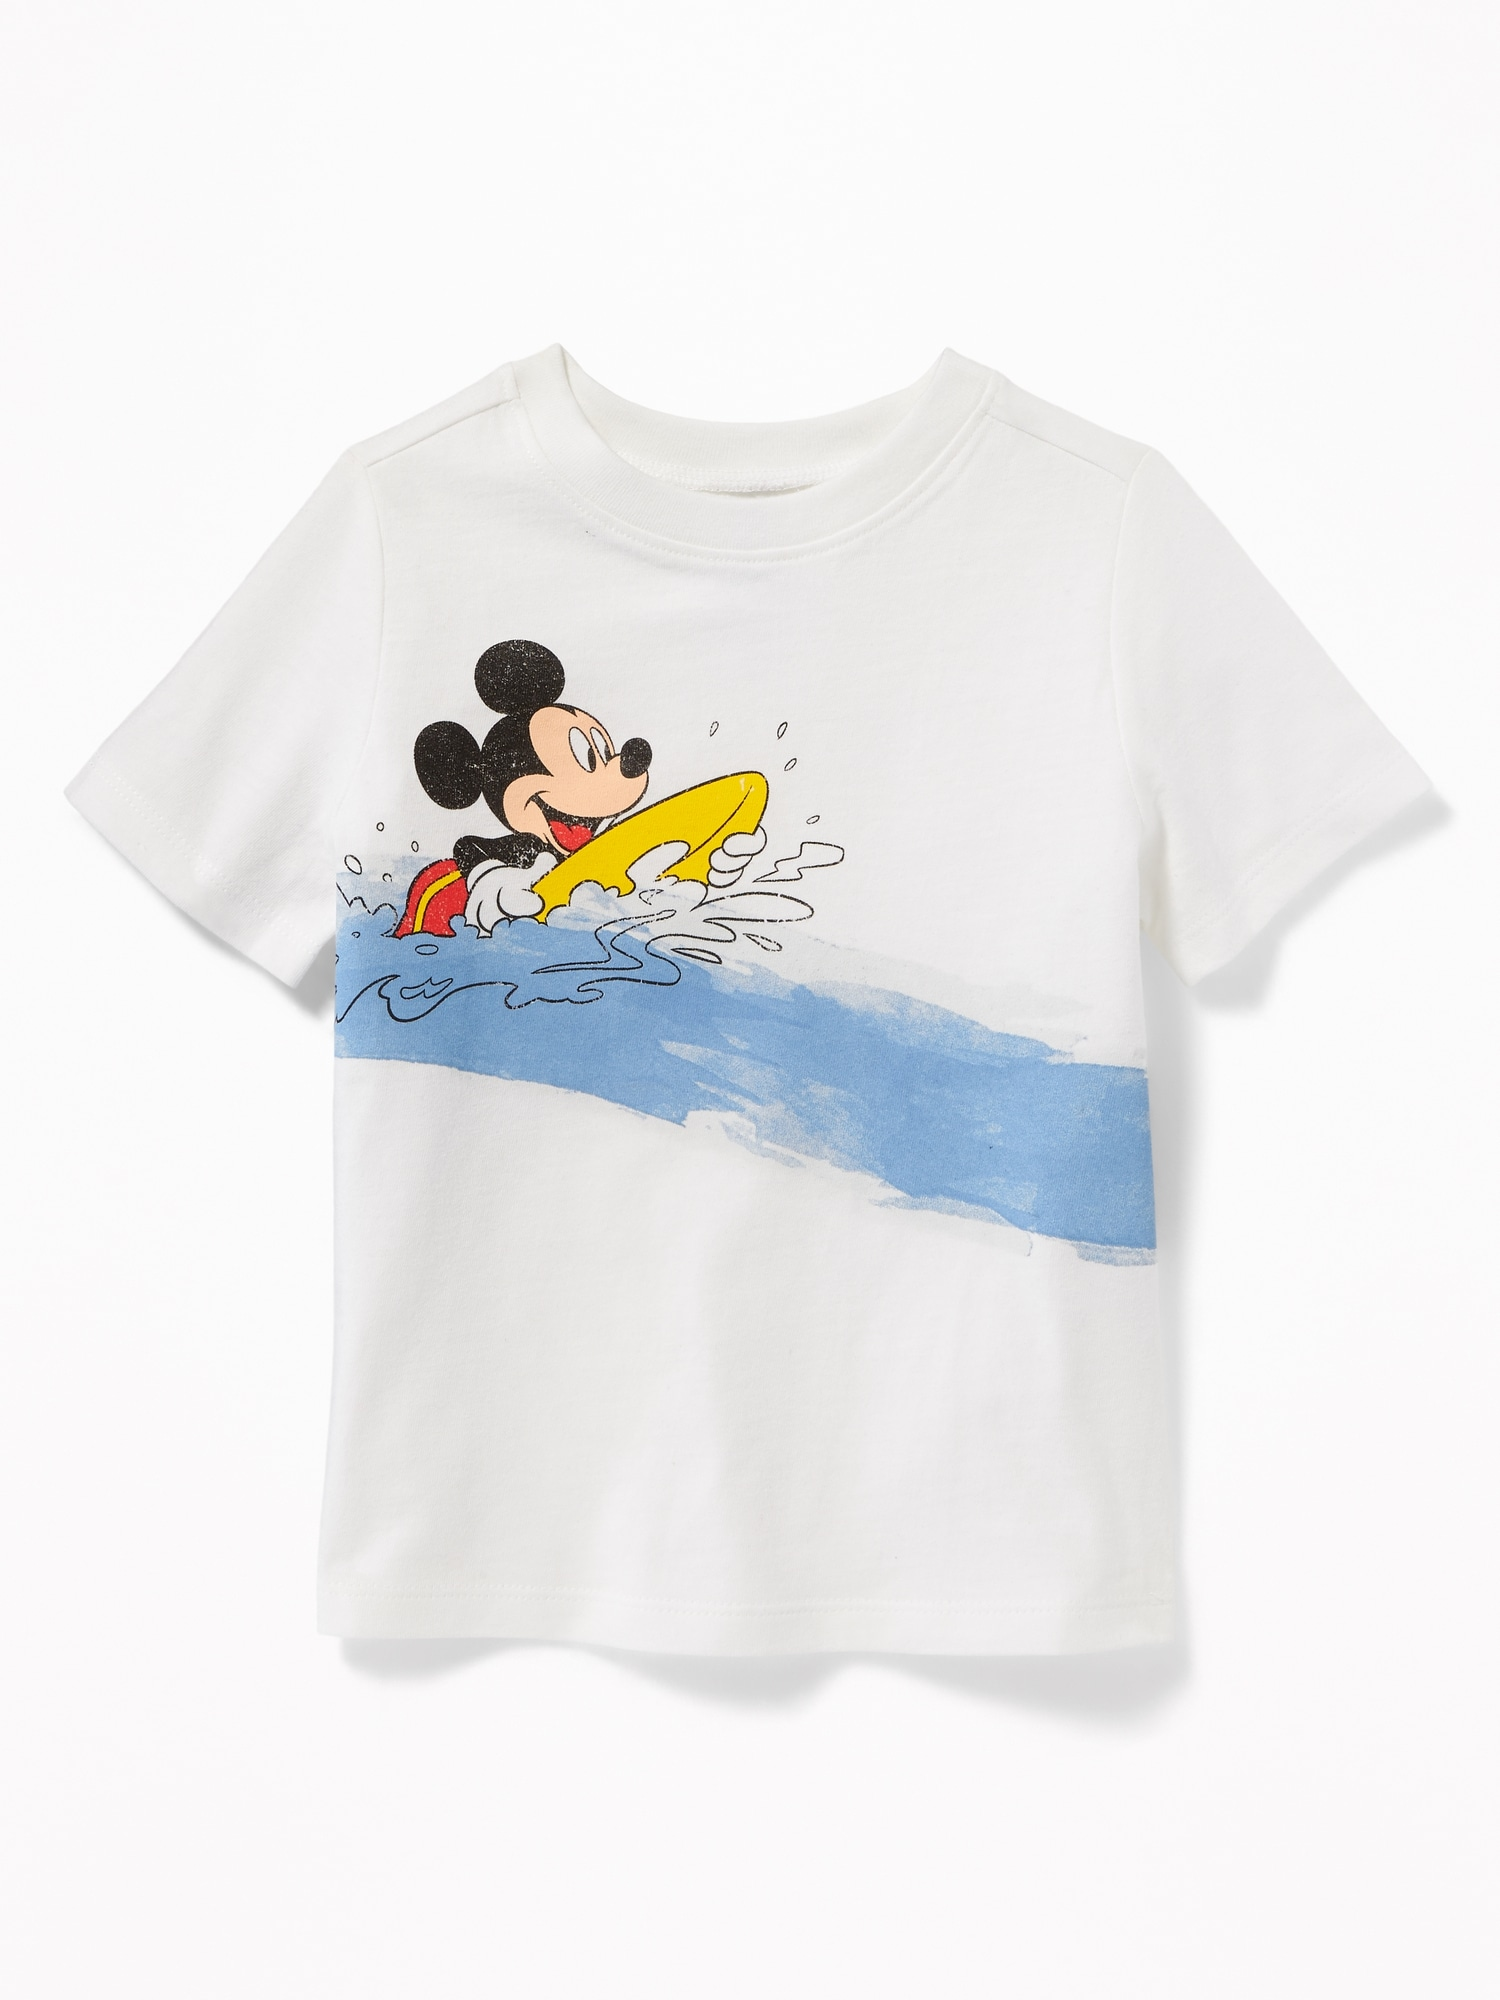 91e4facc Disney© Mickey Mouse Surf Graphic Tee for Toddler Boys | Old Navy